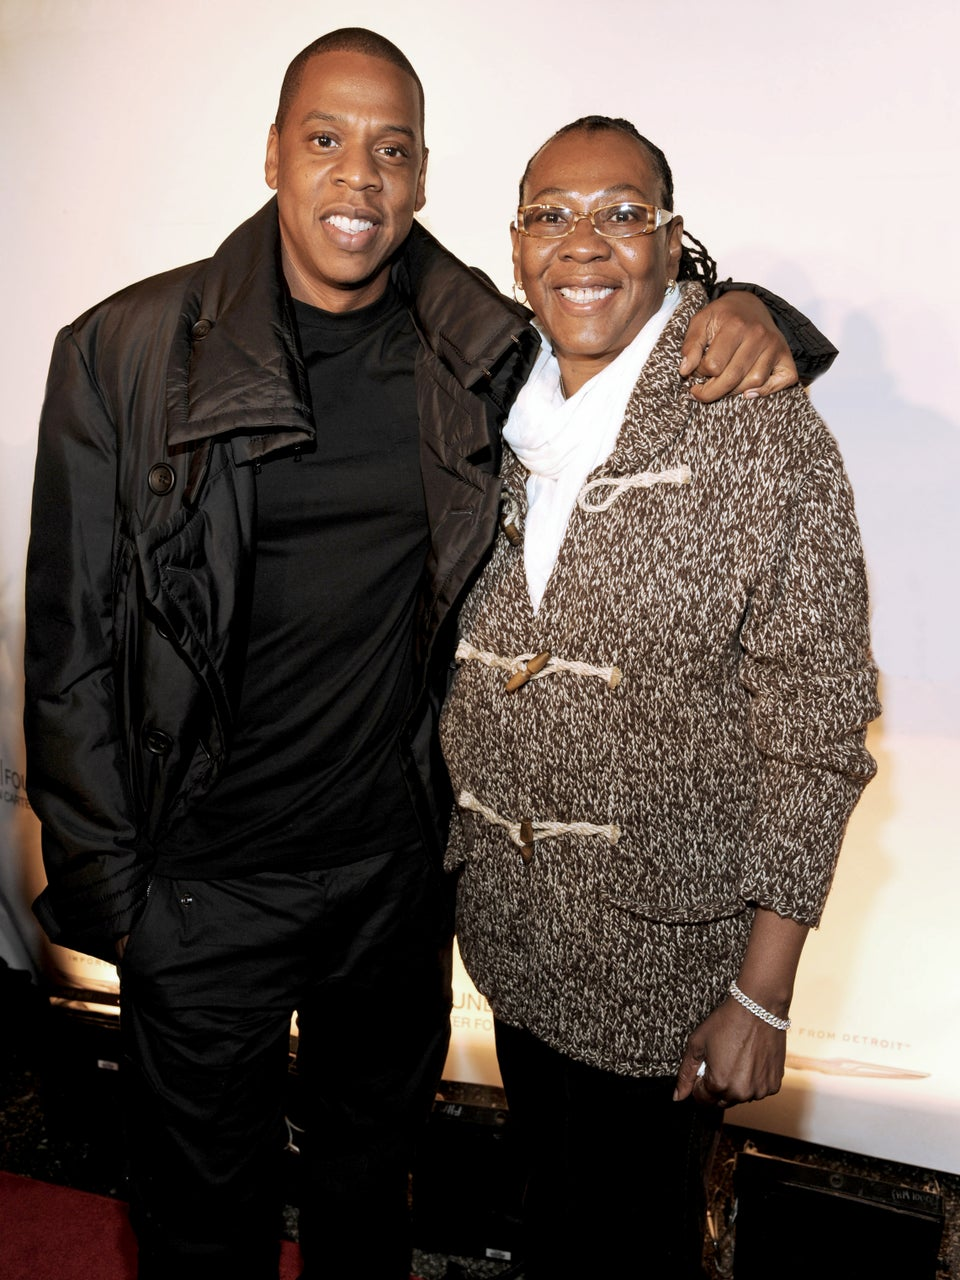 Jay-Z's Mother Opens Up About Coming Out Publicly On 4:44: 'I Did It For Me'